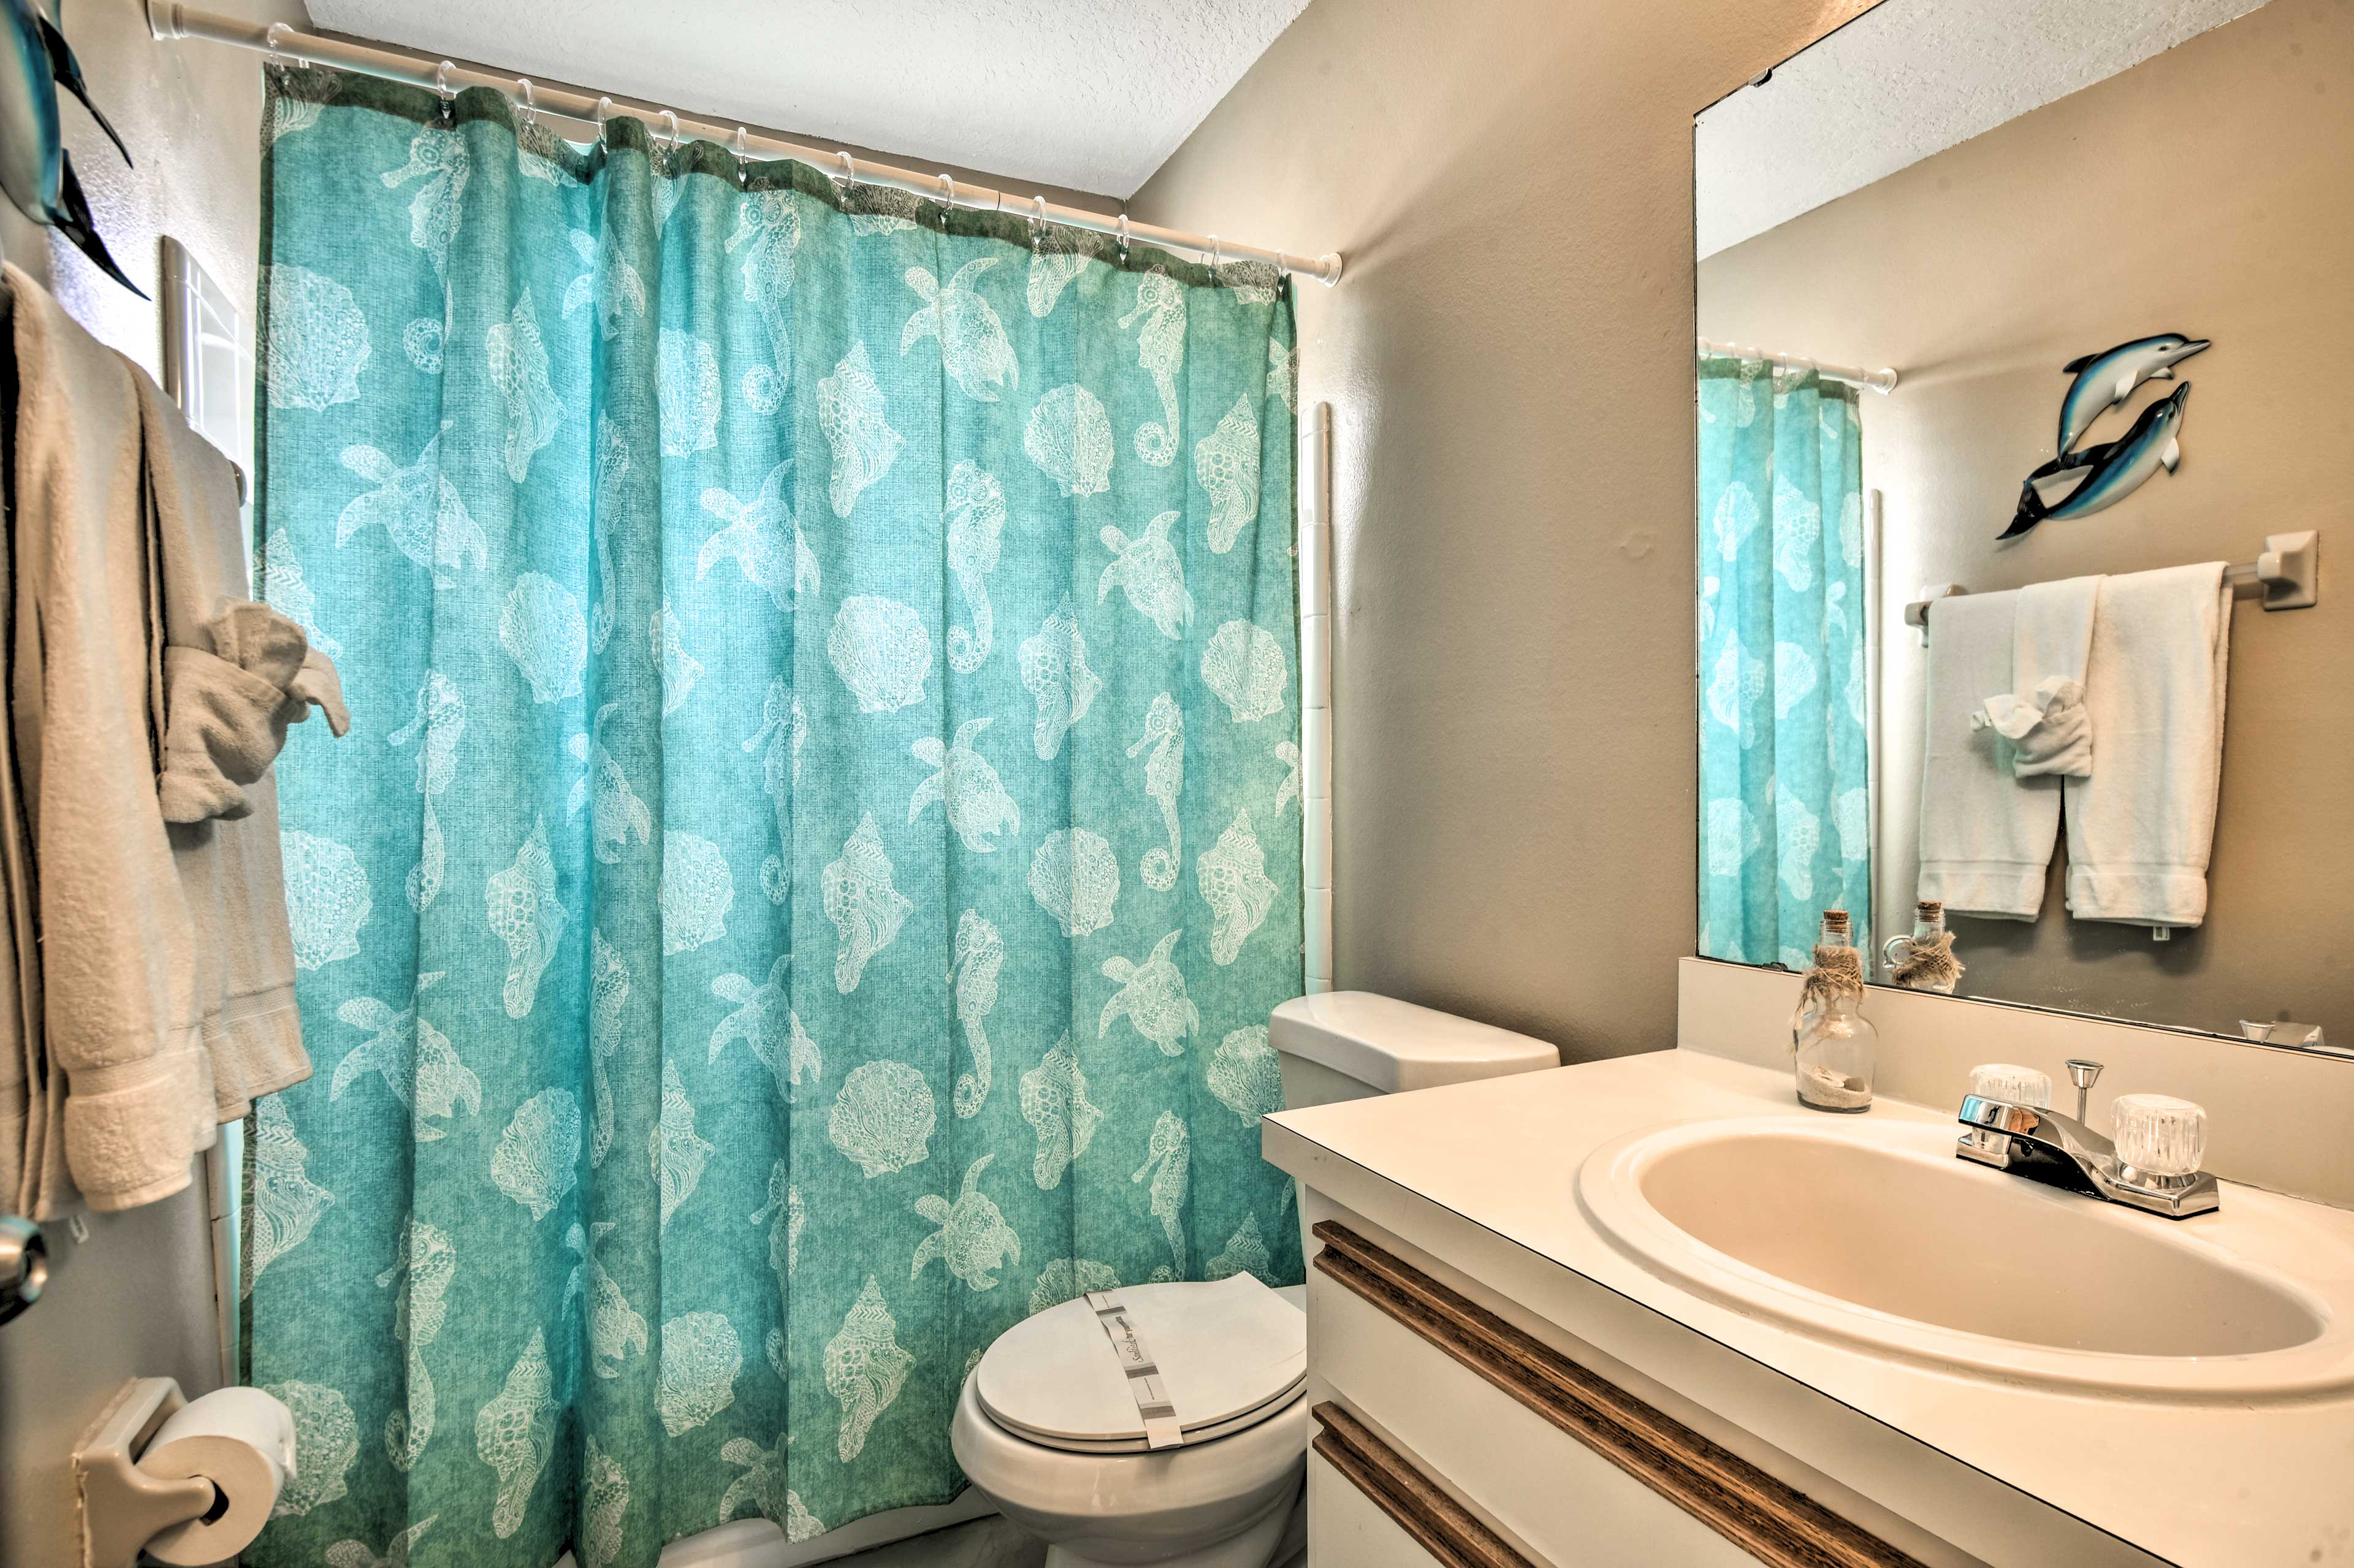 The second bathroom offers a shower/tub combo for guests.